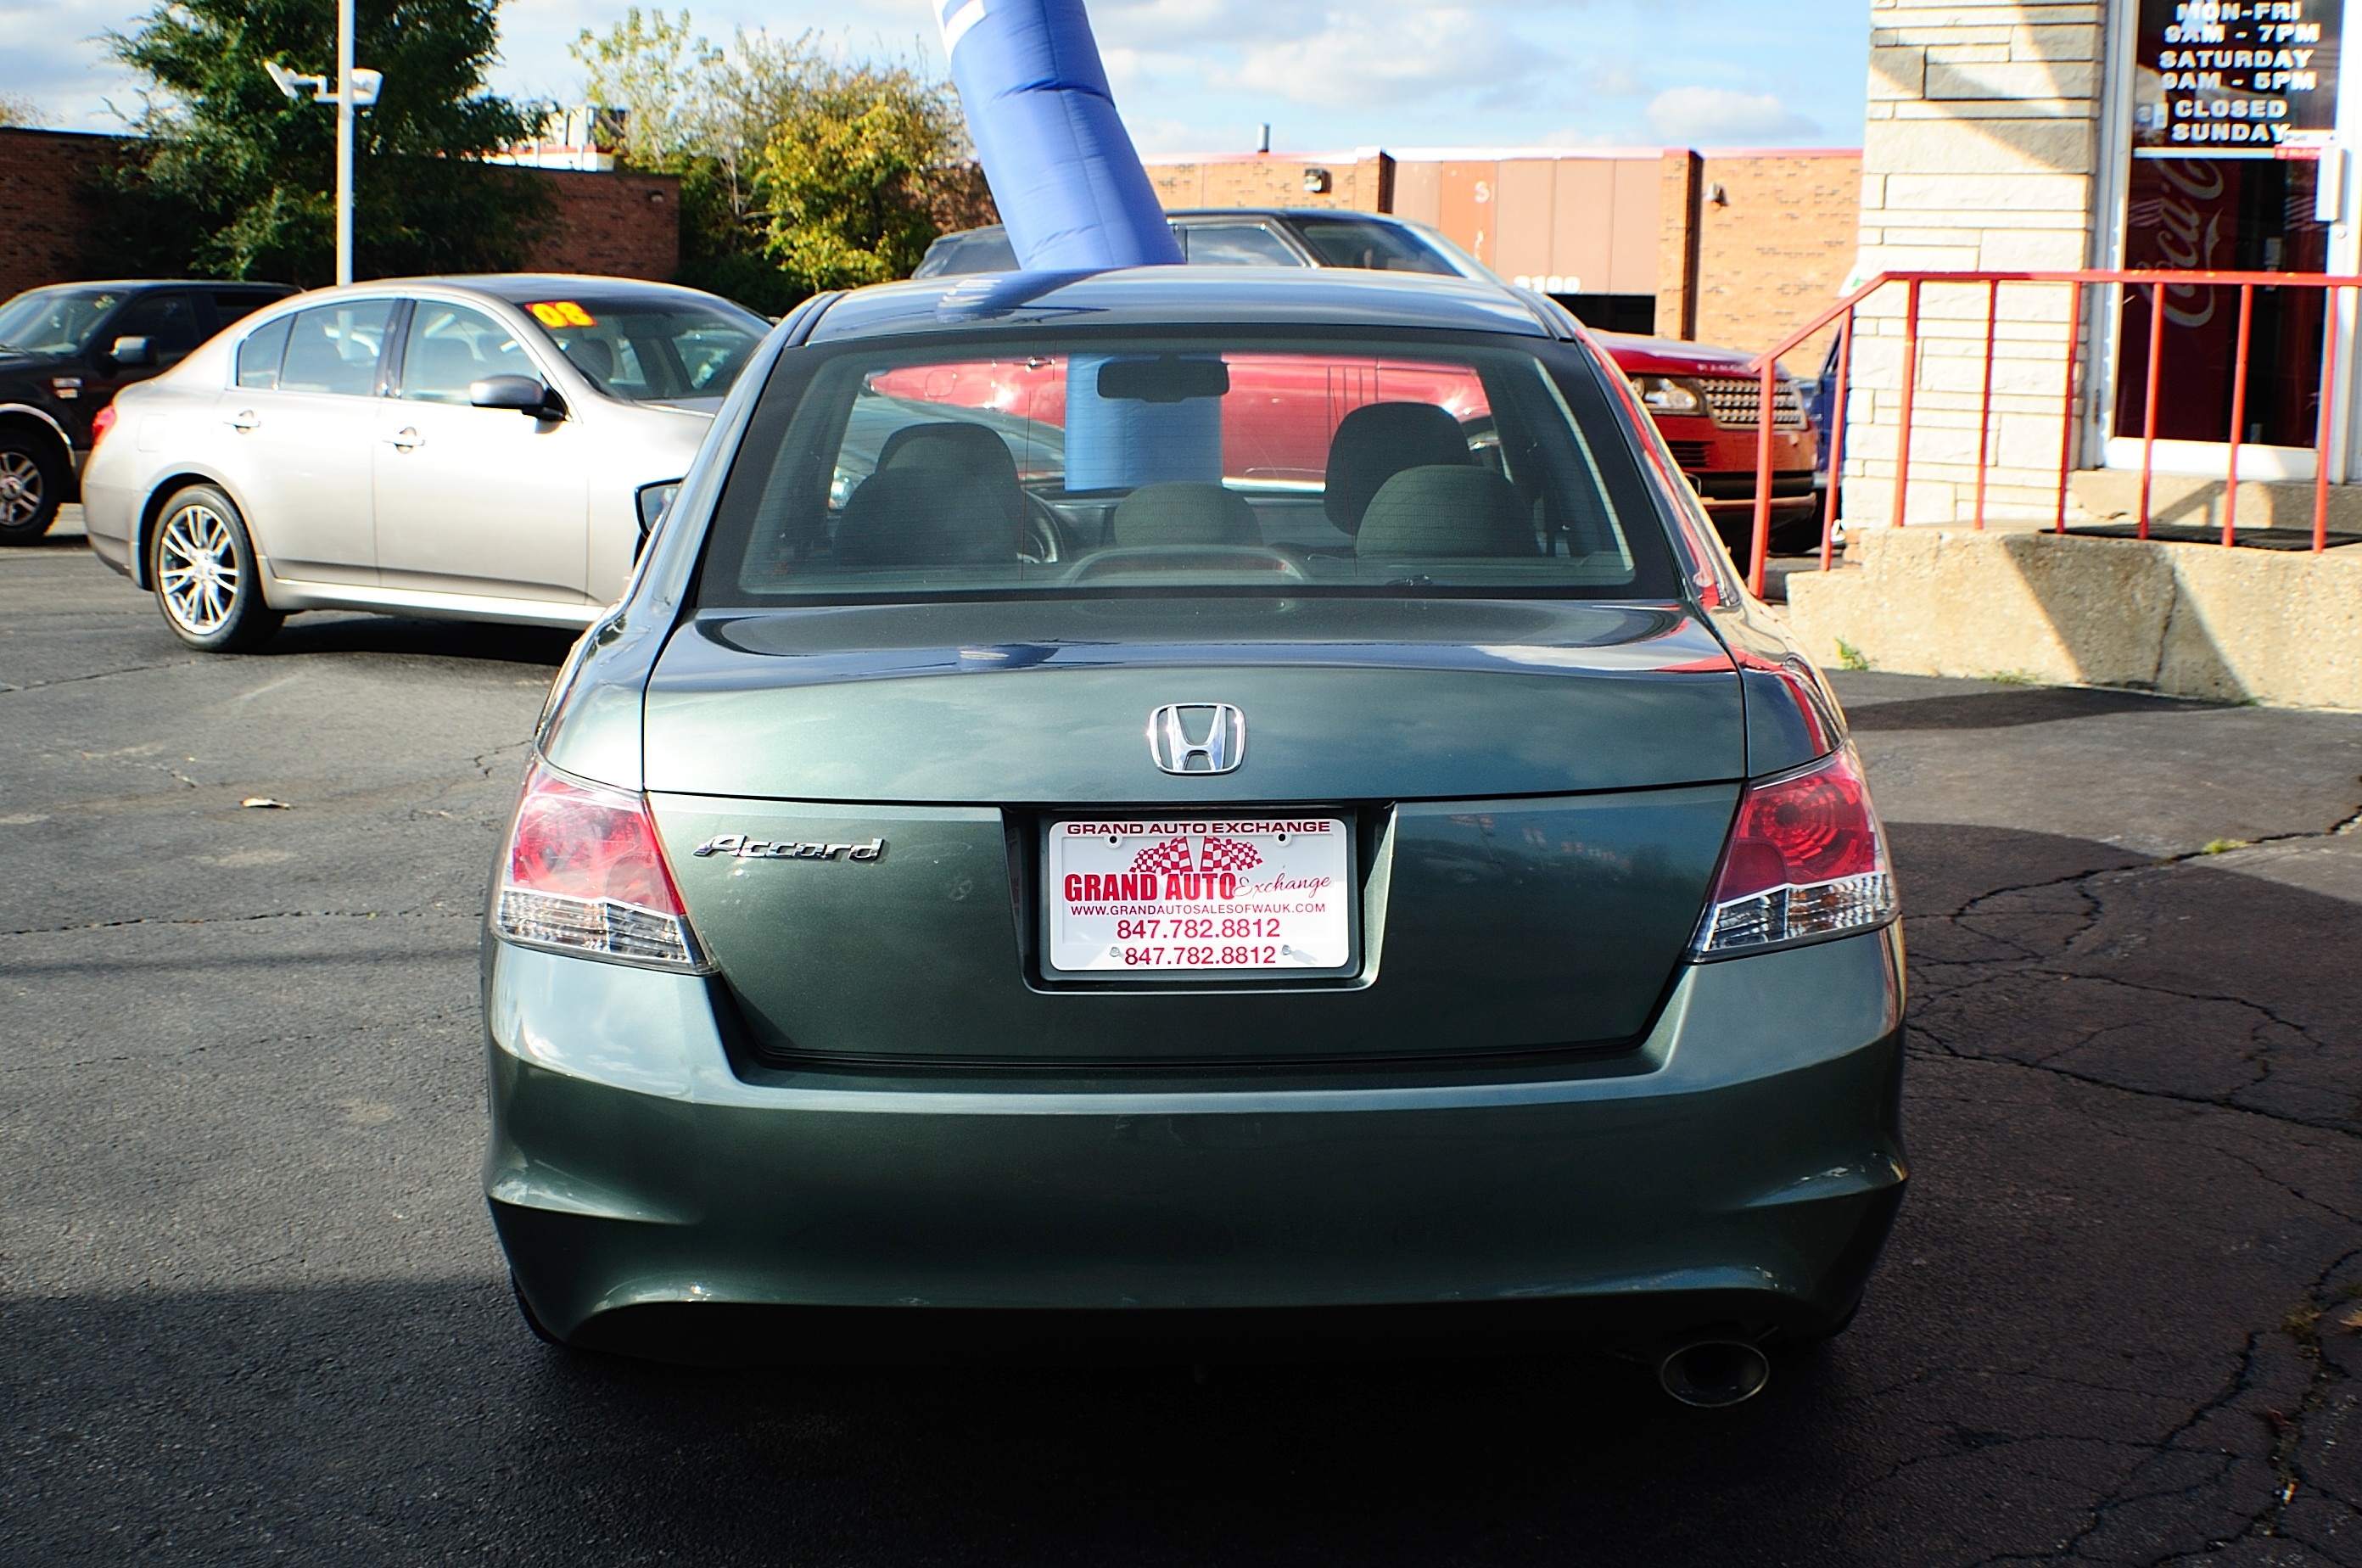 2008 Honda Accord EX Green Sport Sedan Used Car Sale Buffalo Grove Deerfield Fox Lake